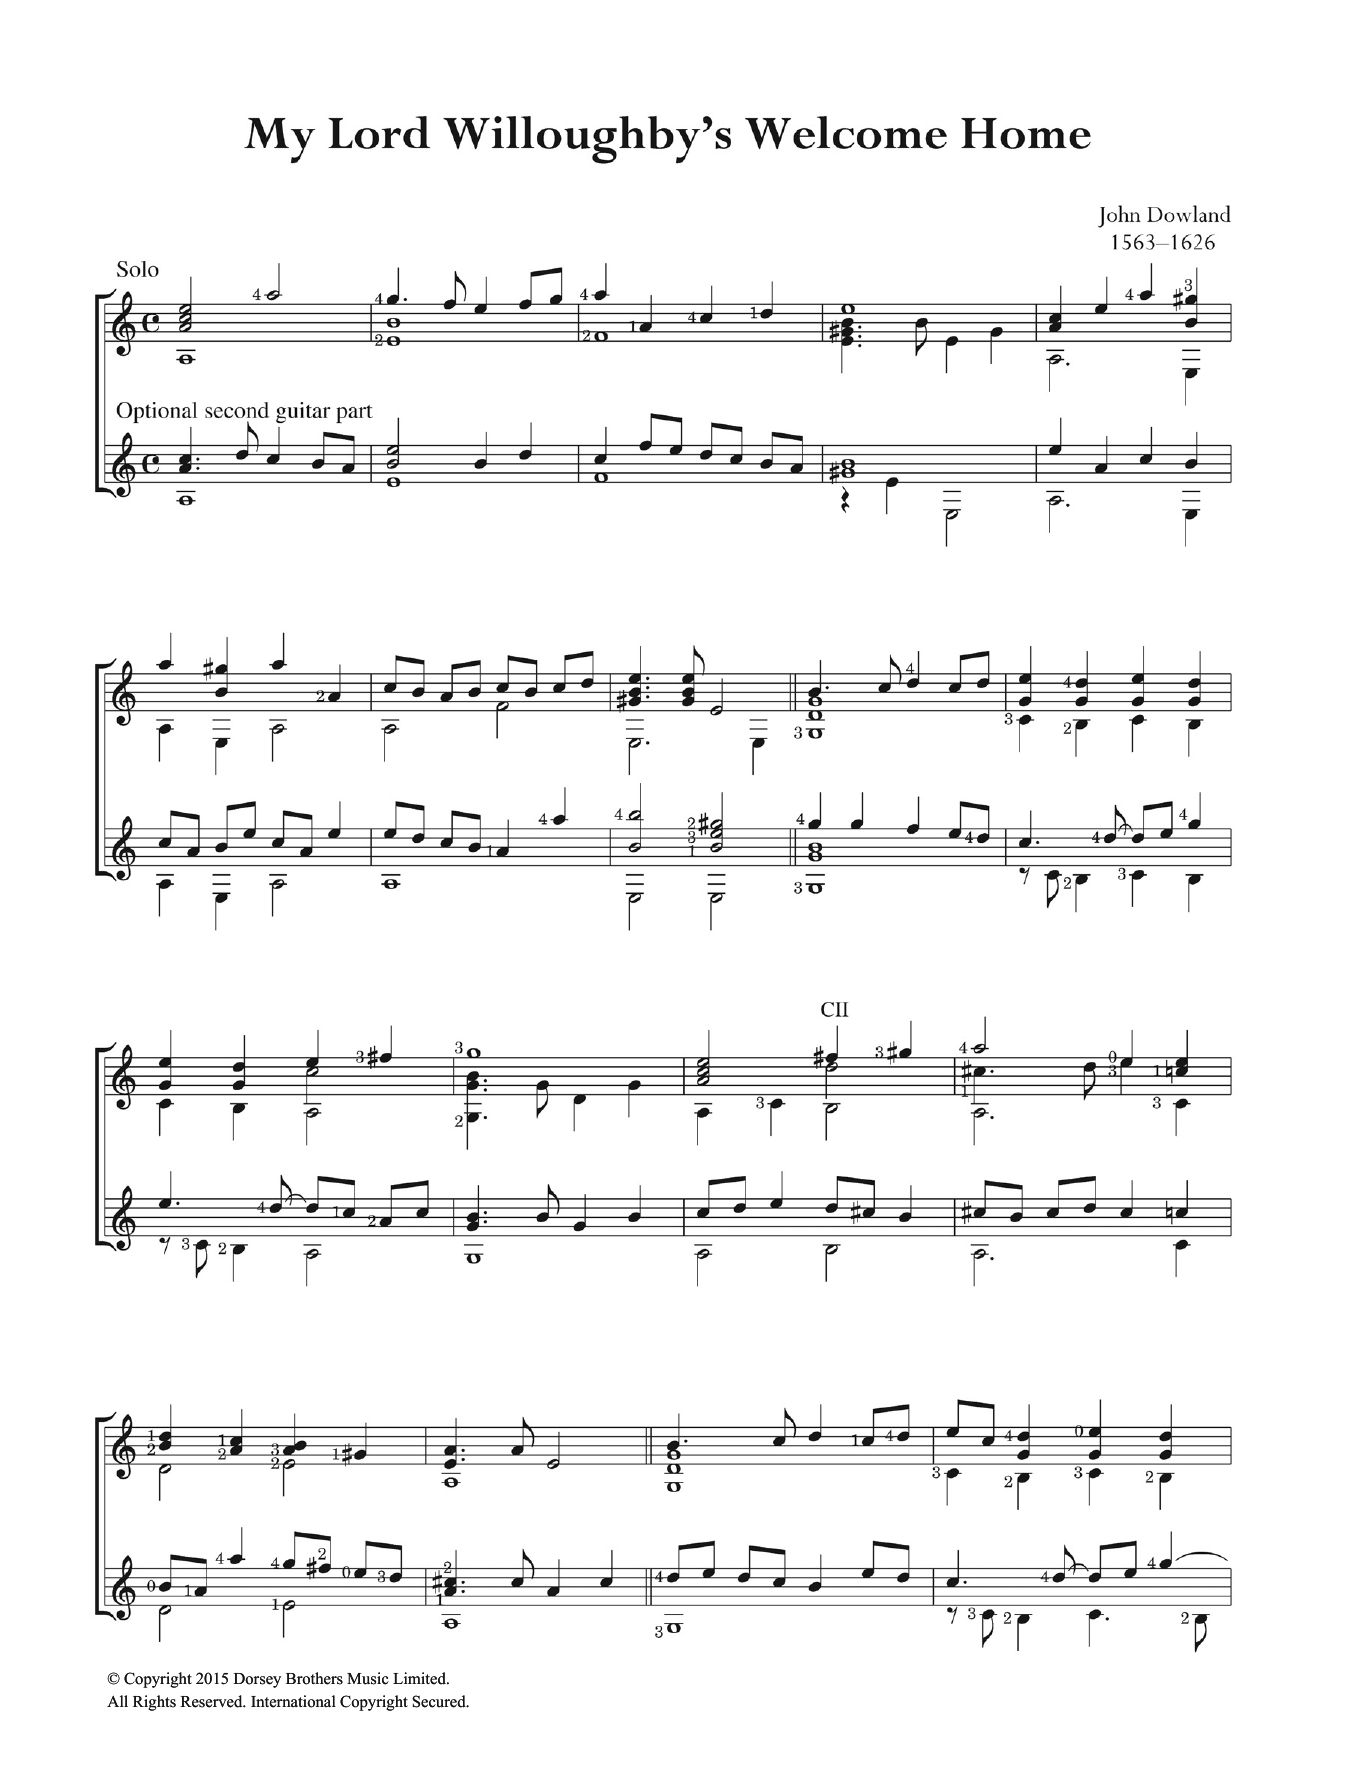 My Lord Willoughby's Welcome Home Sheet Music